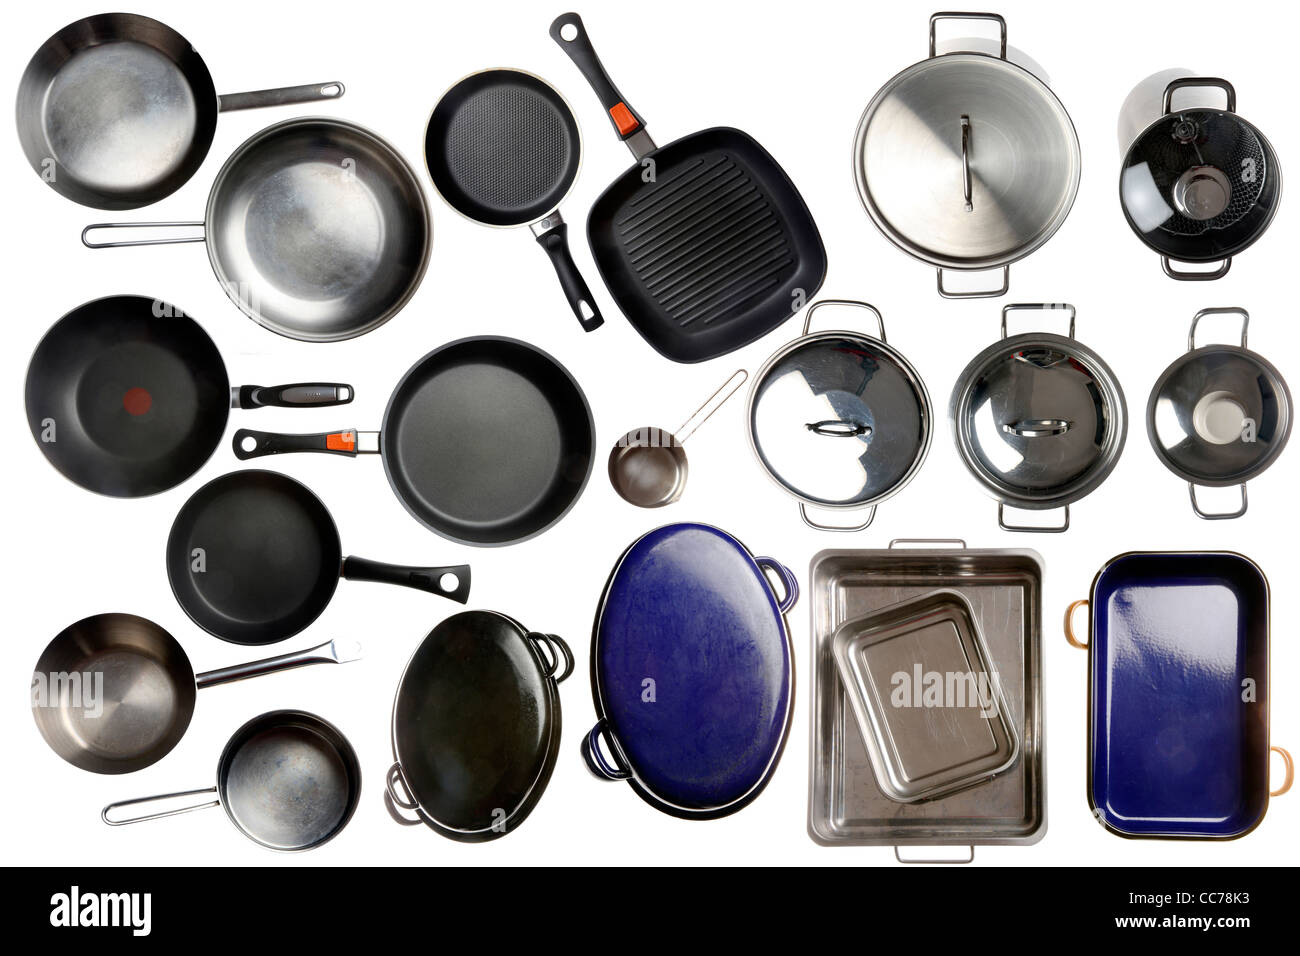 Compilation of various kitchen utensils, kitchen tools. - Stock Image